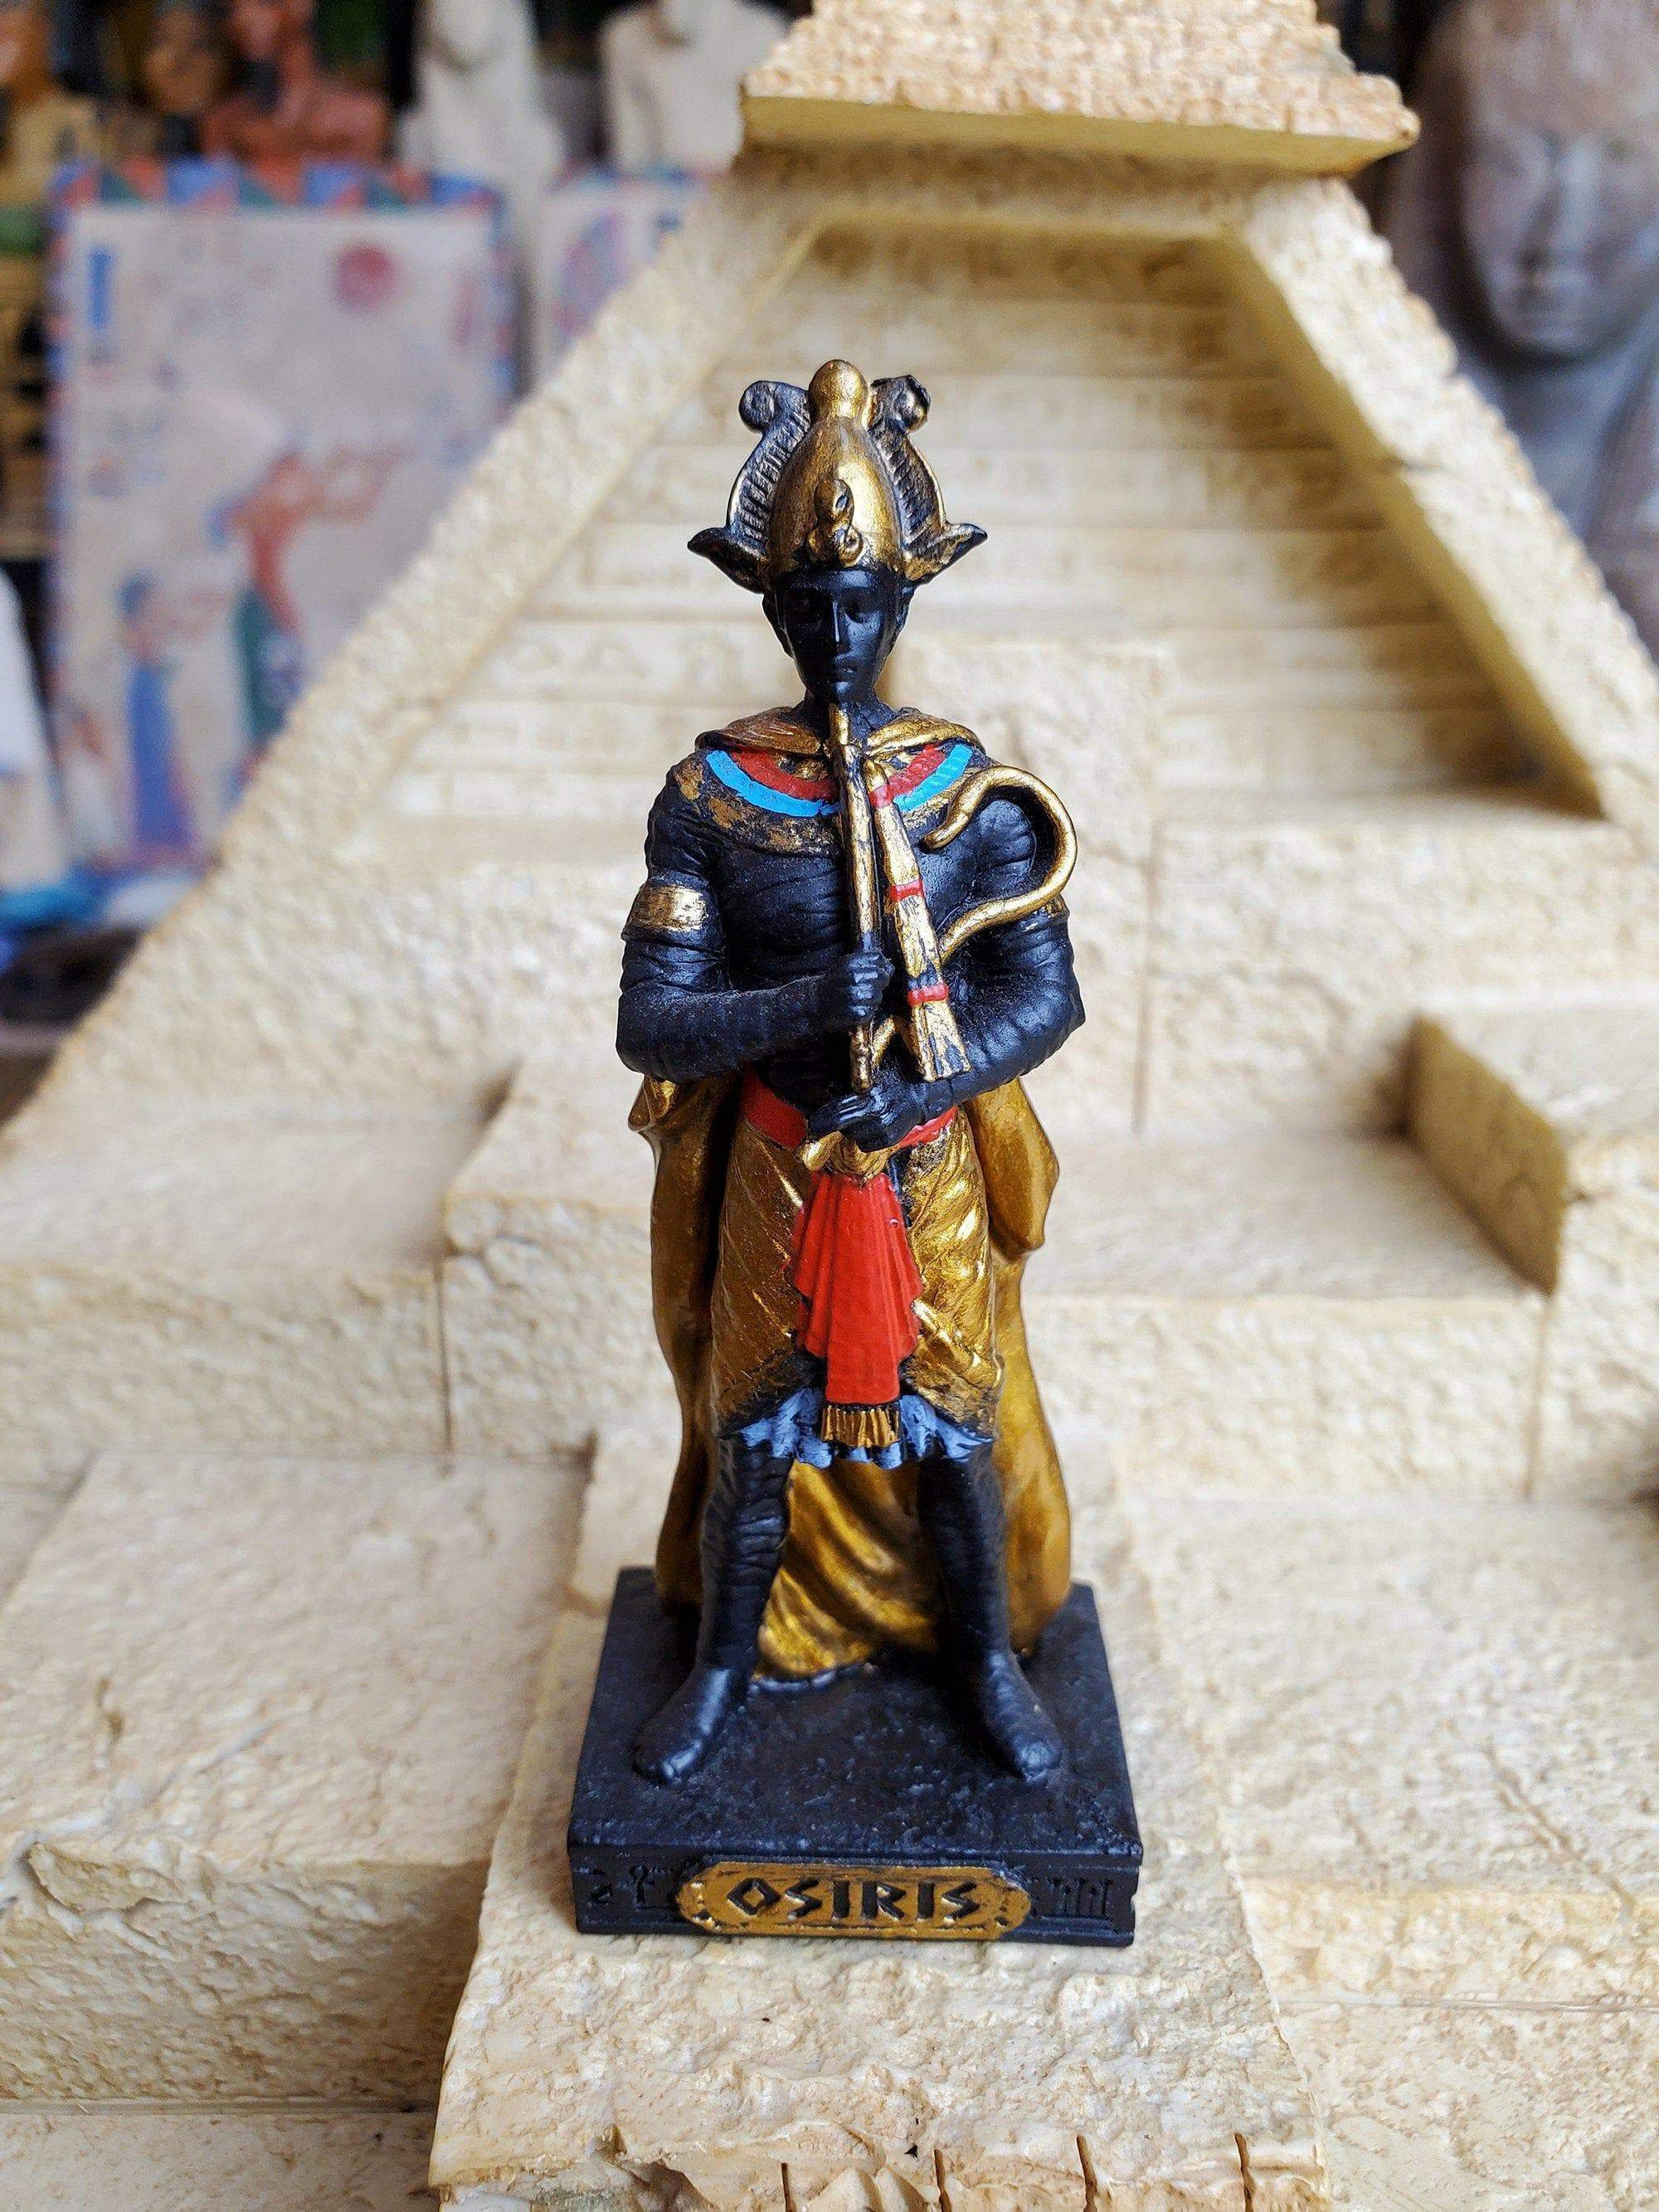 Ancient Egypt Vintage Hand-Painted Osiris Mini Altar Statue Ancient Treasures Ancientreasures Viking Odin Thor Mjolnir Celtic Ancient Egypt Norse Norse Mythology